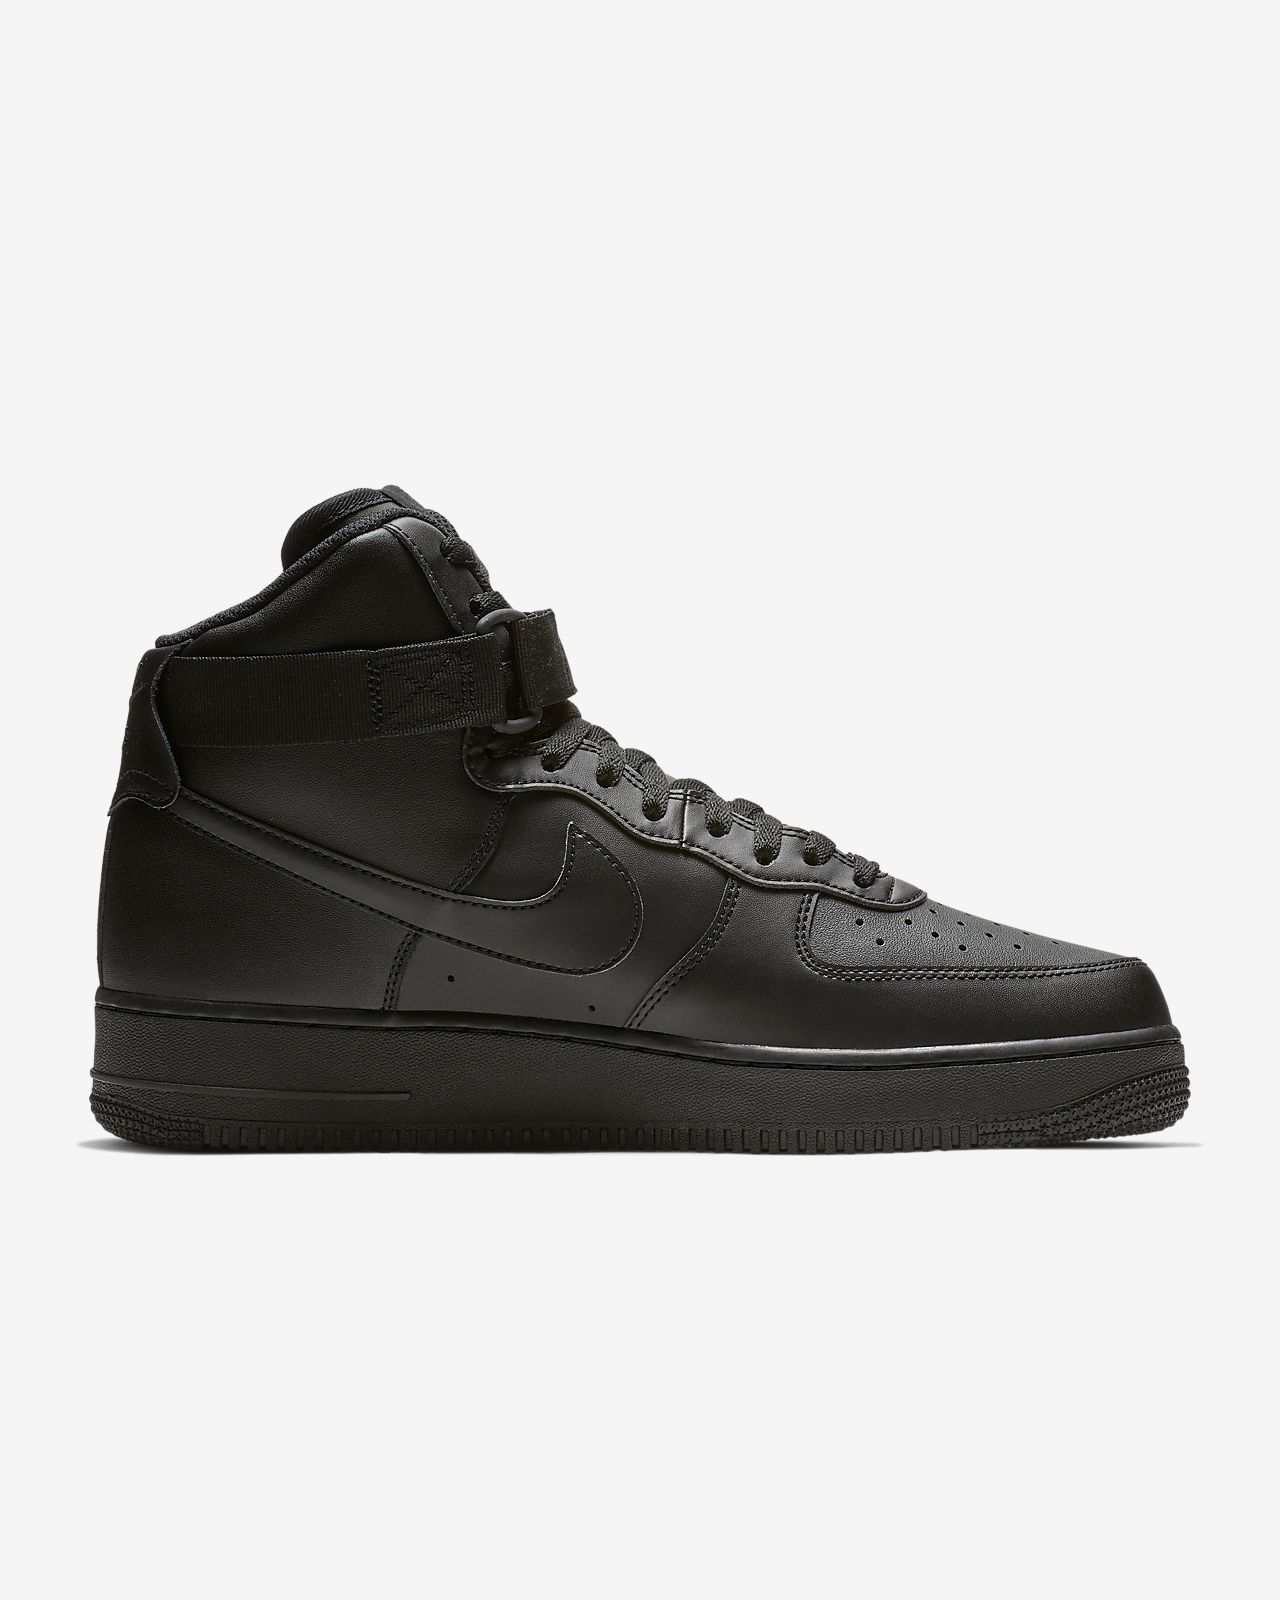 promo code 41d21 093d3 ... Nike Air Force 1 High 07 Men s Shoe